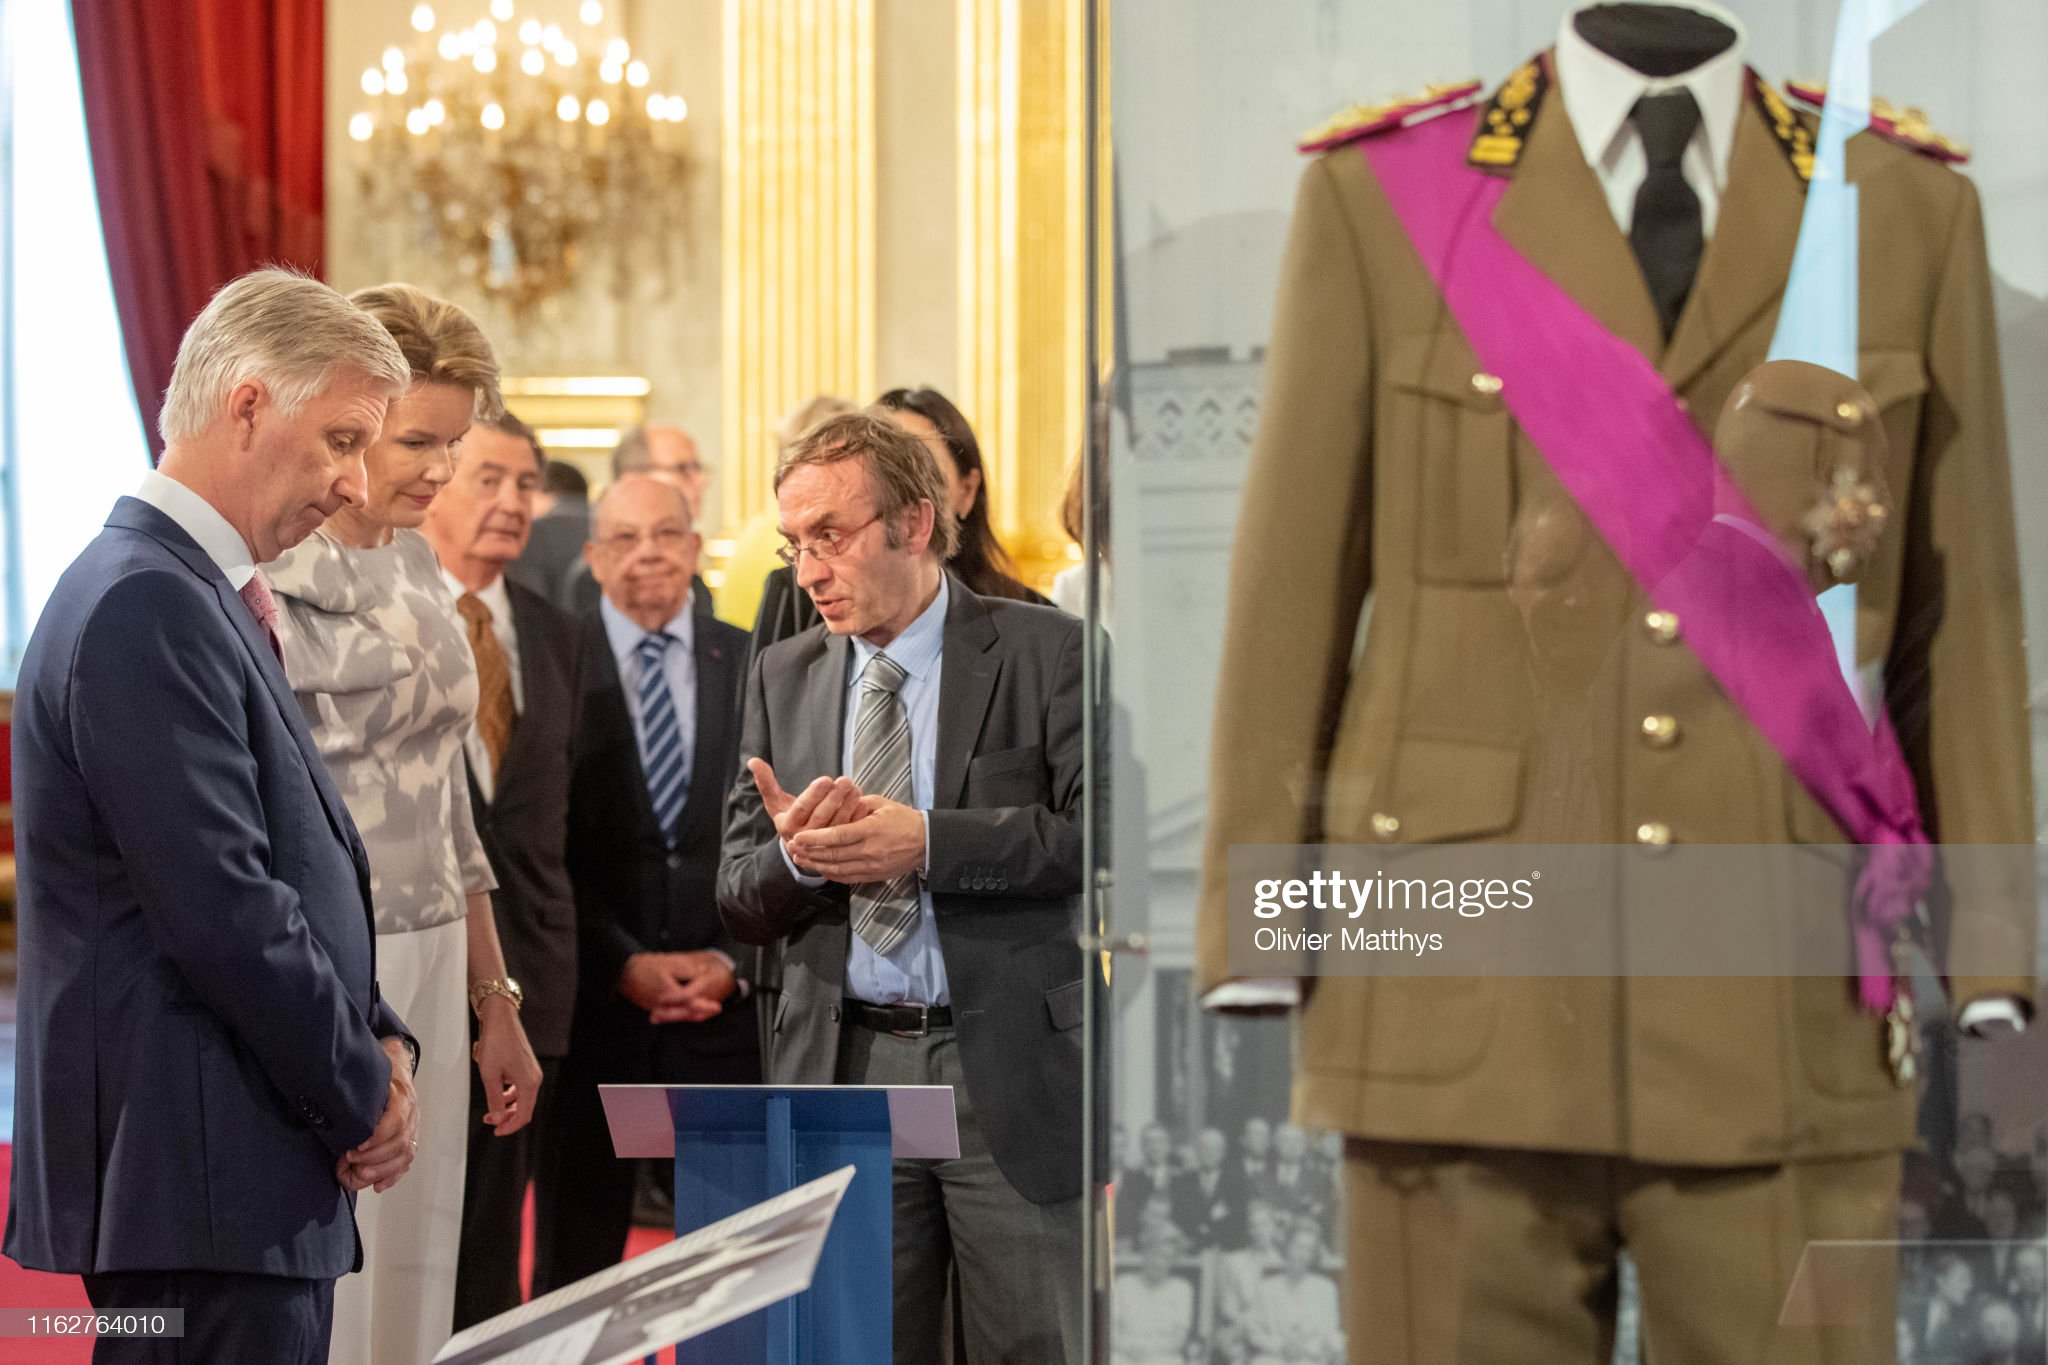 CASA REAL BELGA - Página 54 King-philippe-of-belgium-and-queen-mathilde-look-at-the-uniform-of-picture-id1162764010?s=2048x2048